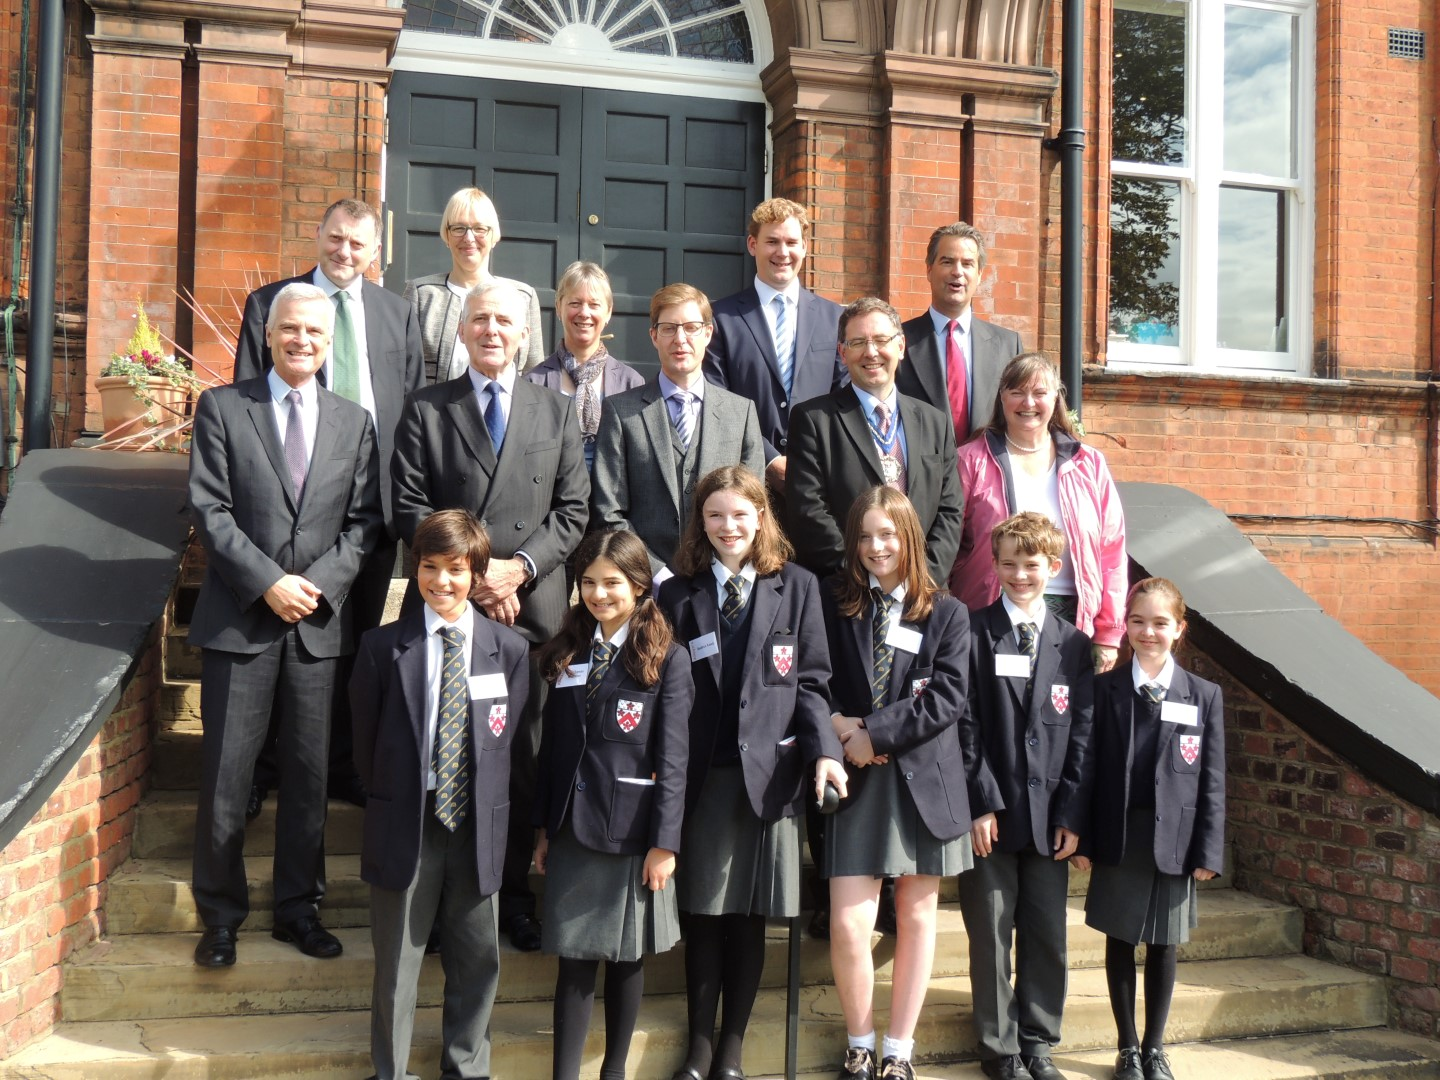 The Headmaster with Saddlers' Scholars on the School steps